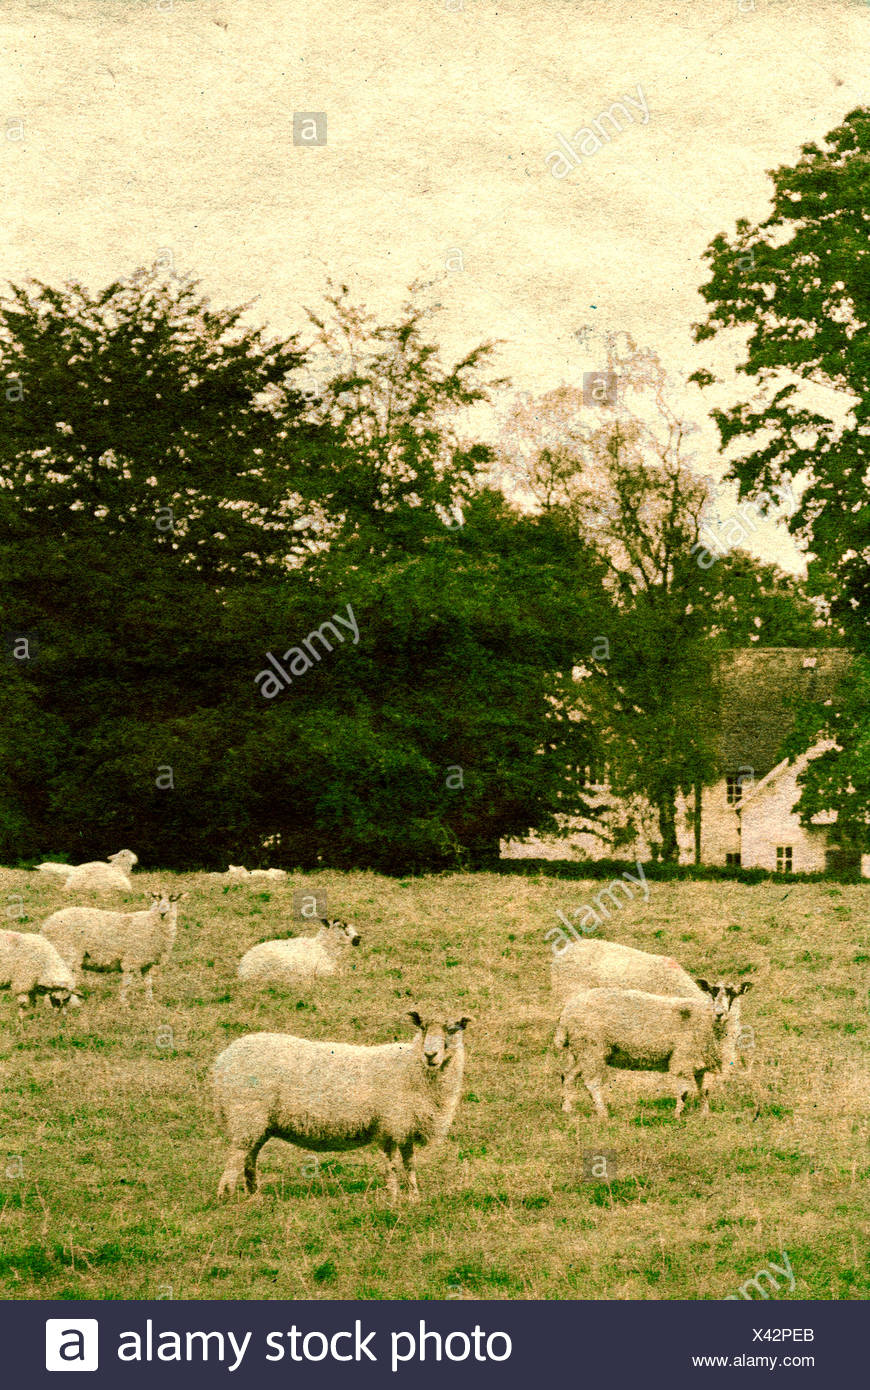 Countryside scene with sheep in a field with a large house hidden amongst trees - Stock Image